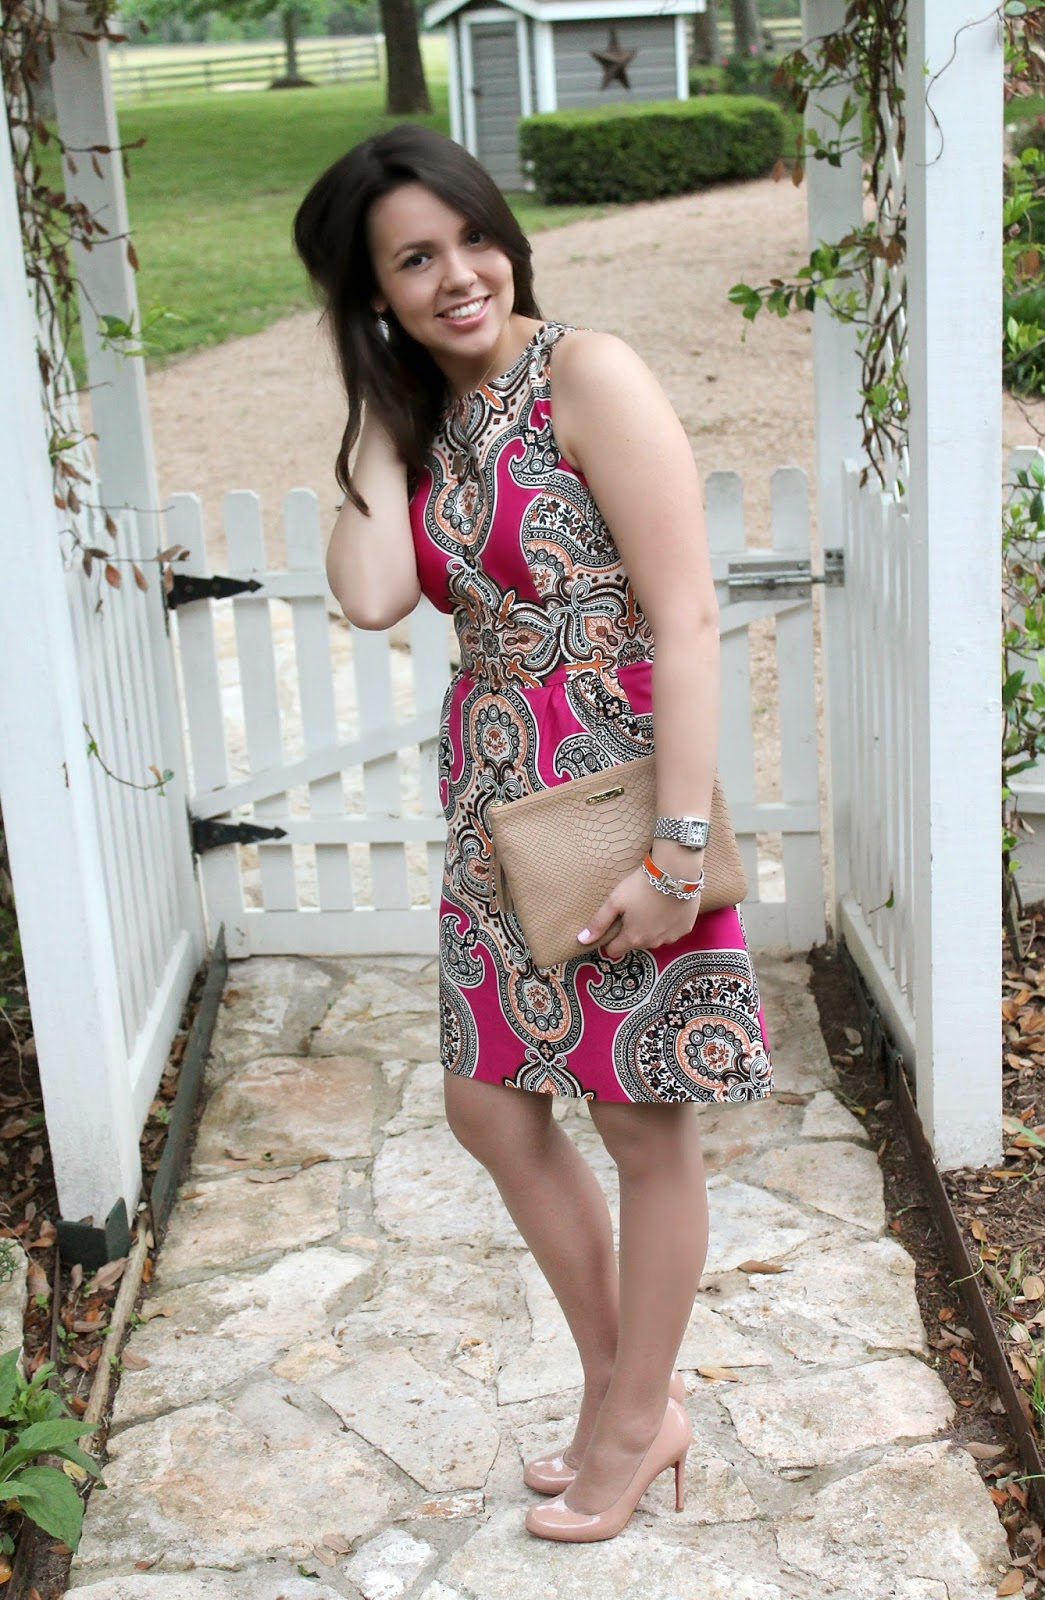 Houston-based style blogger Adored by Alex shares how to style a paisley shift dress for Spring or Summer. Check it out here!